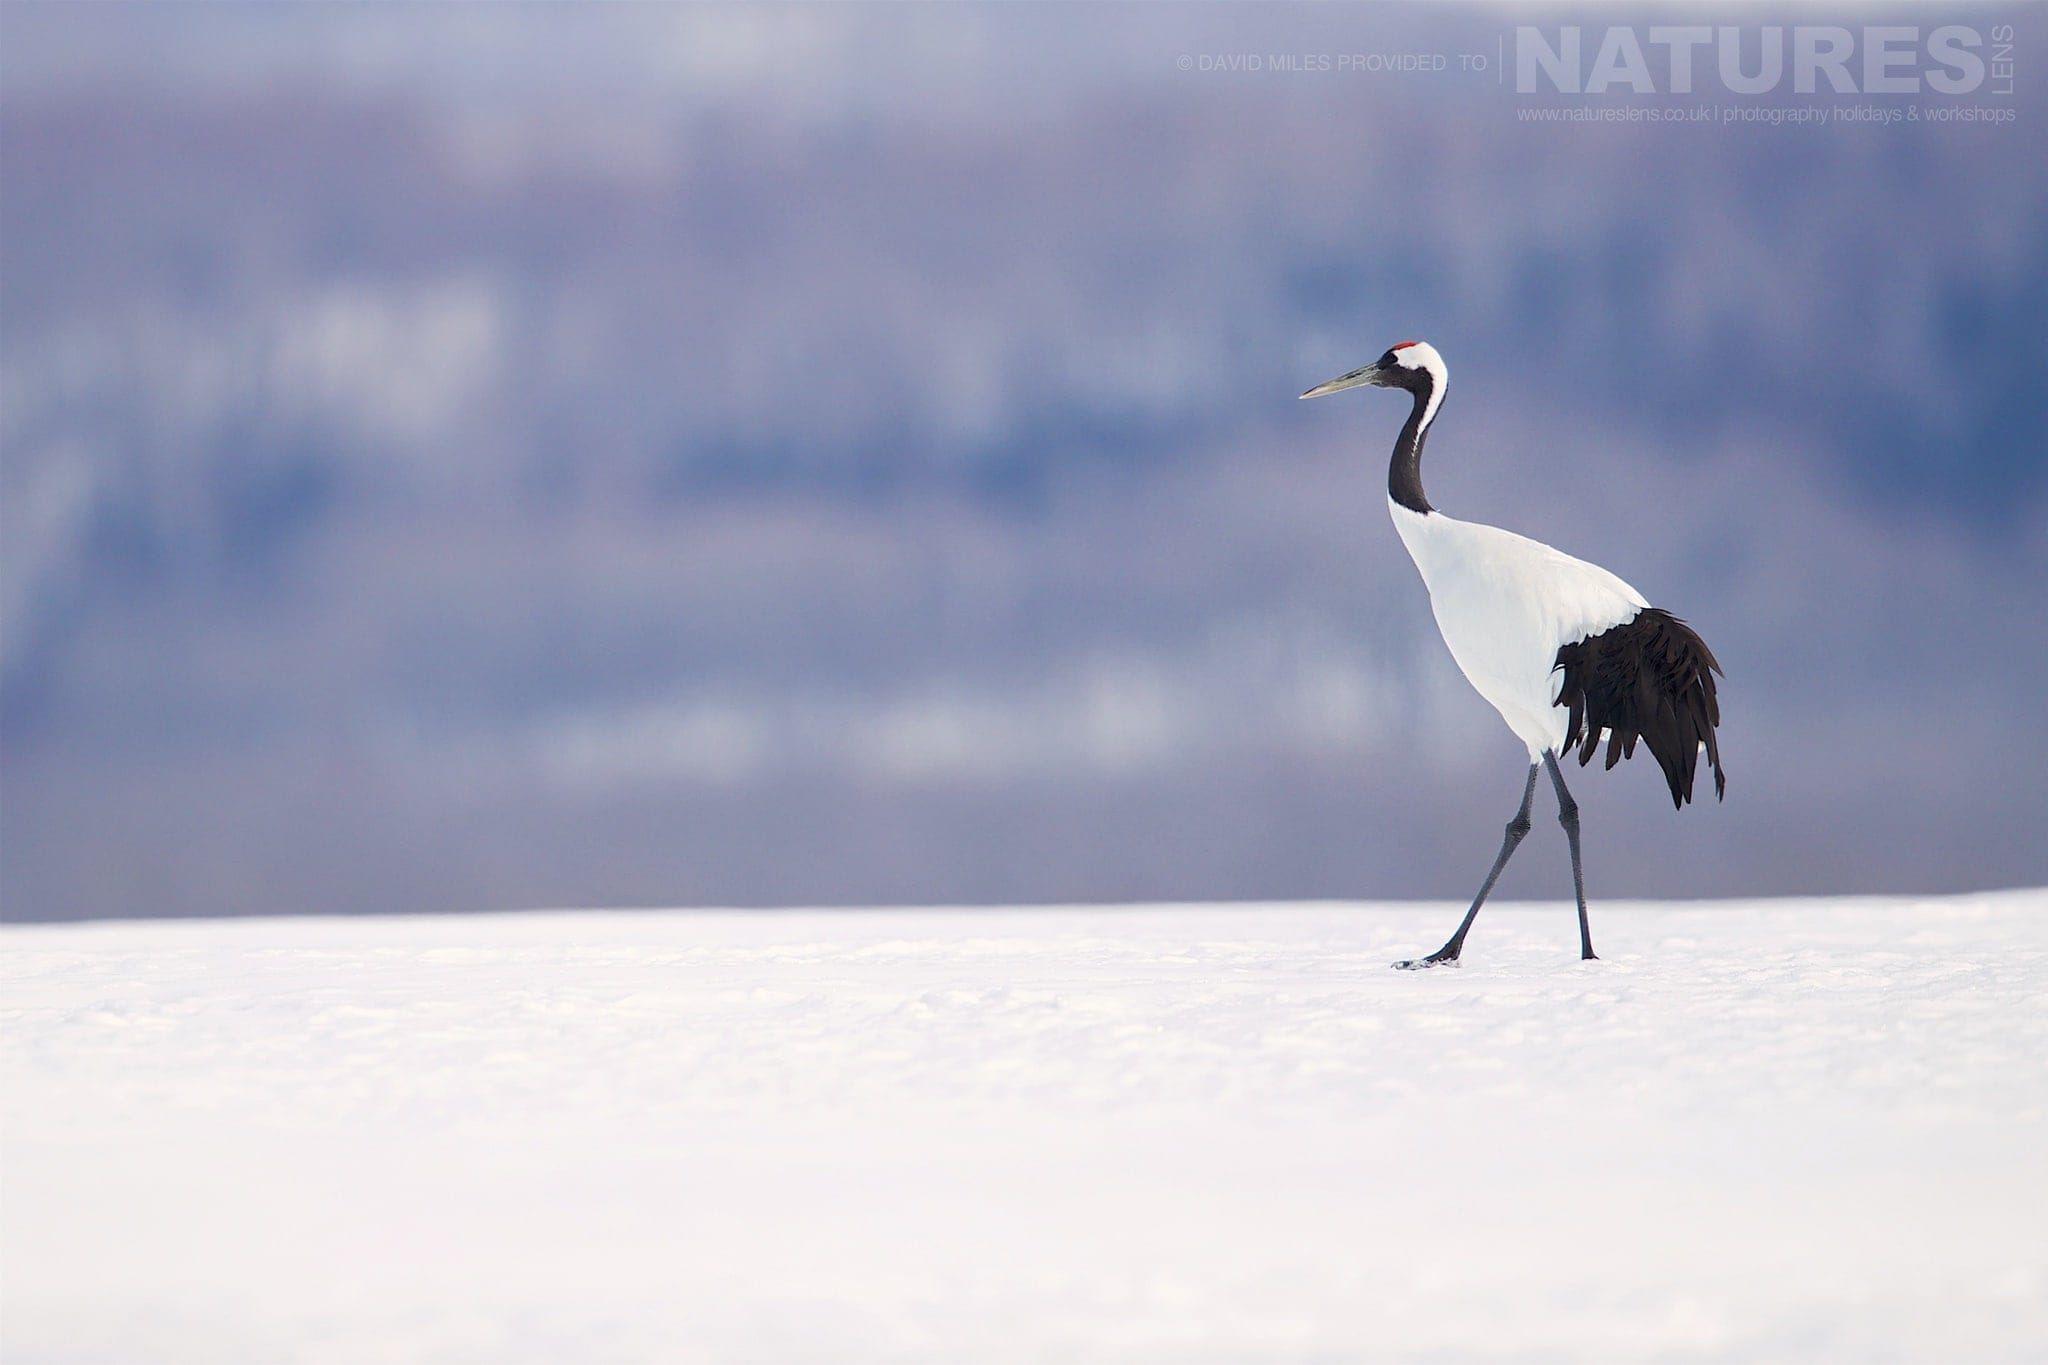 One Of The Red Crowned Cranes Strides Across A Snow Covered Field Outside Tsurui   Photographed During The Winter Wildlife Of Japan Photography Holiday